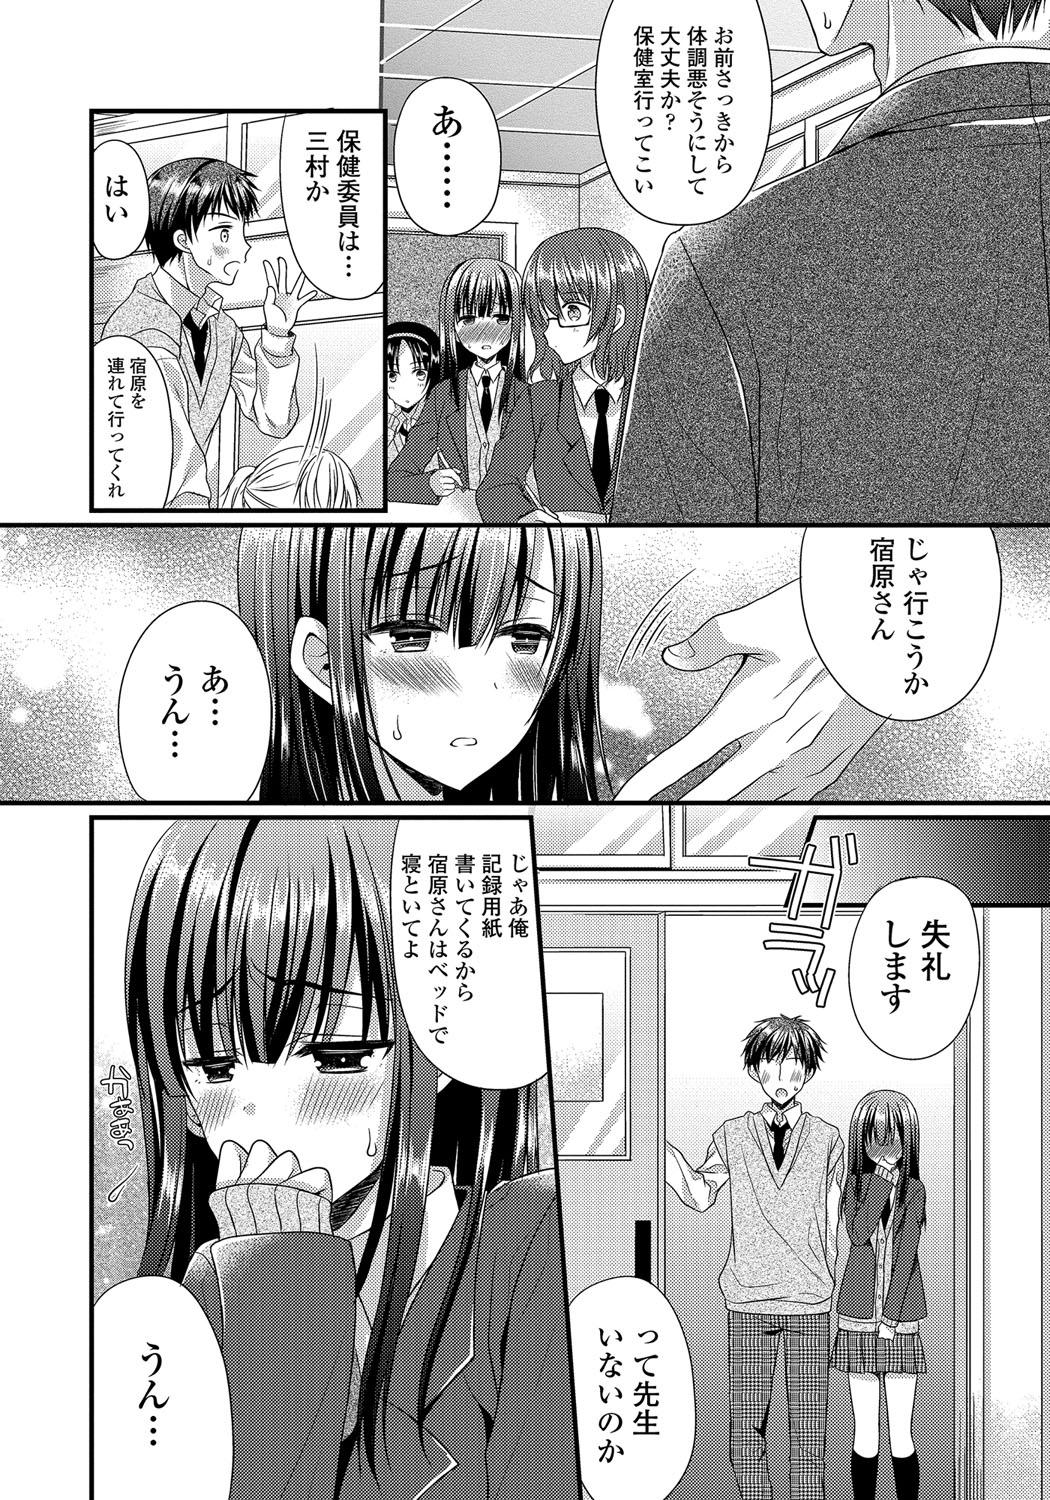 Kanojo to Hajimeteno - For the First Time with Her 42